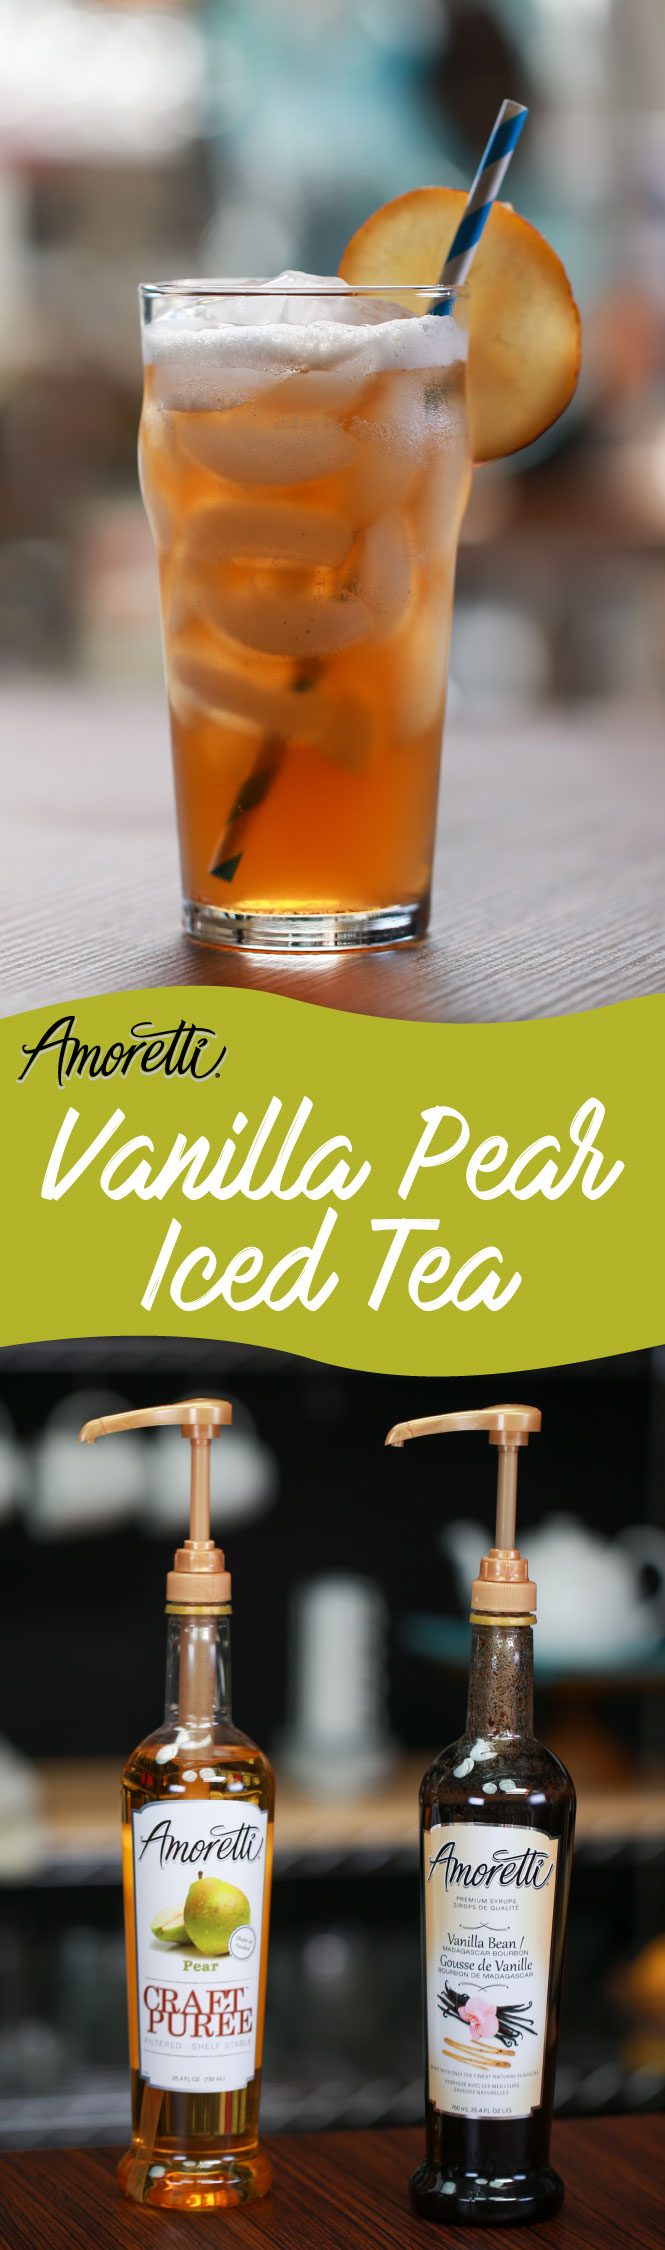 Time to sit back and enjoy the day with our Vanilla Pear Iced Tea!